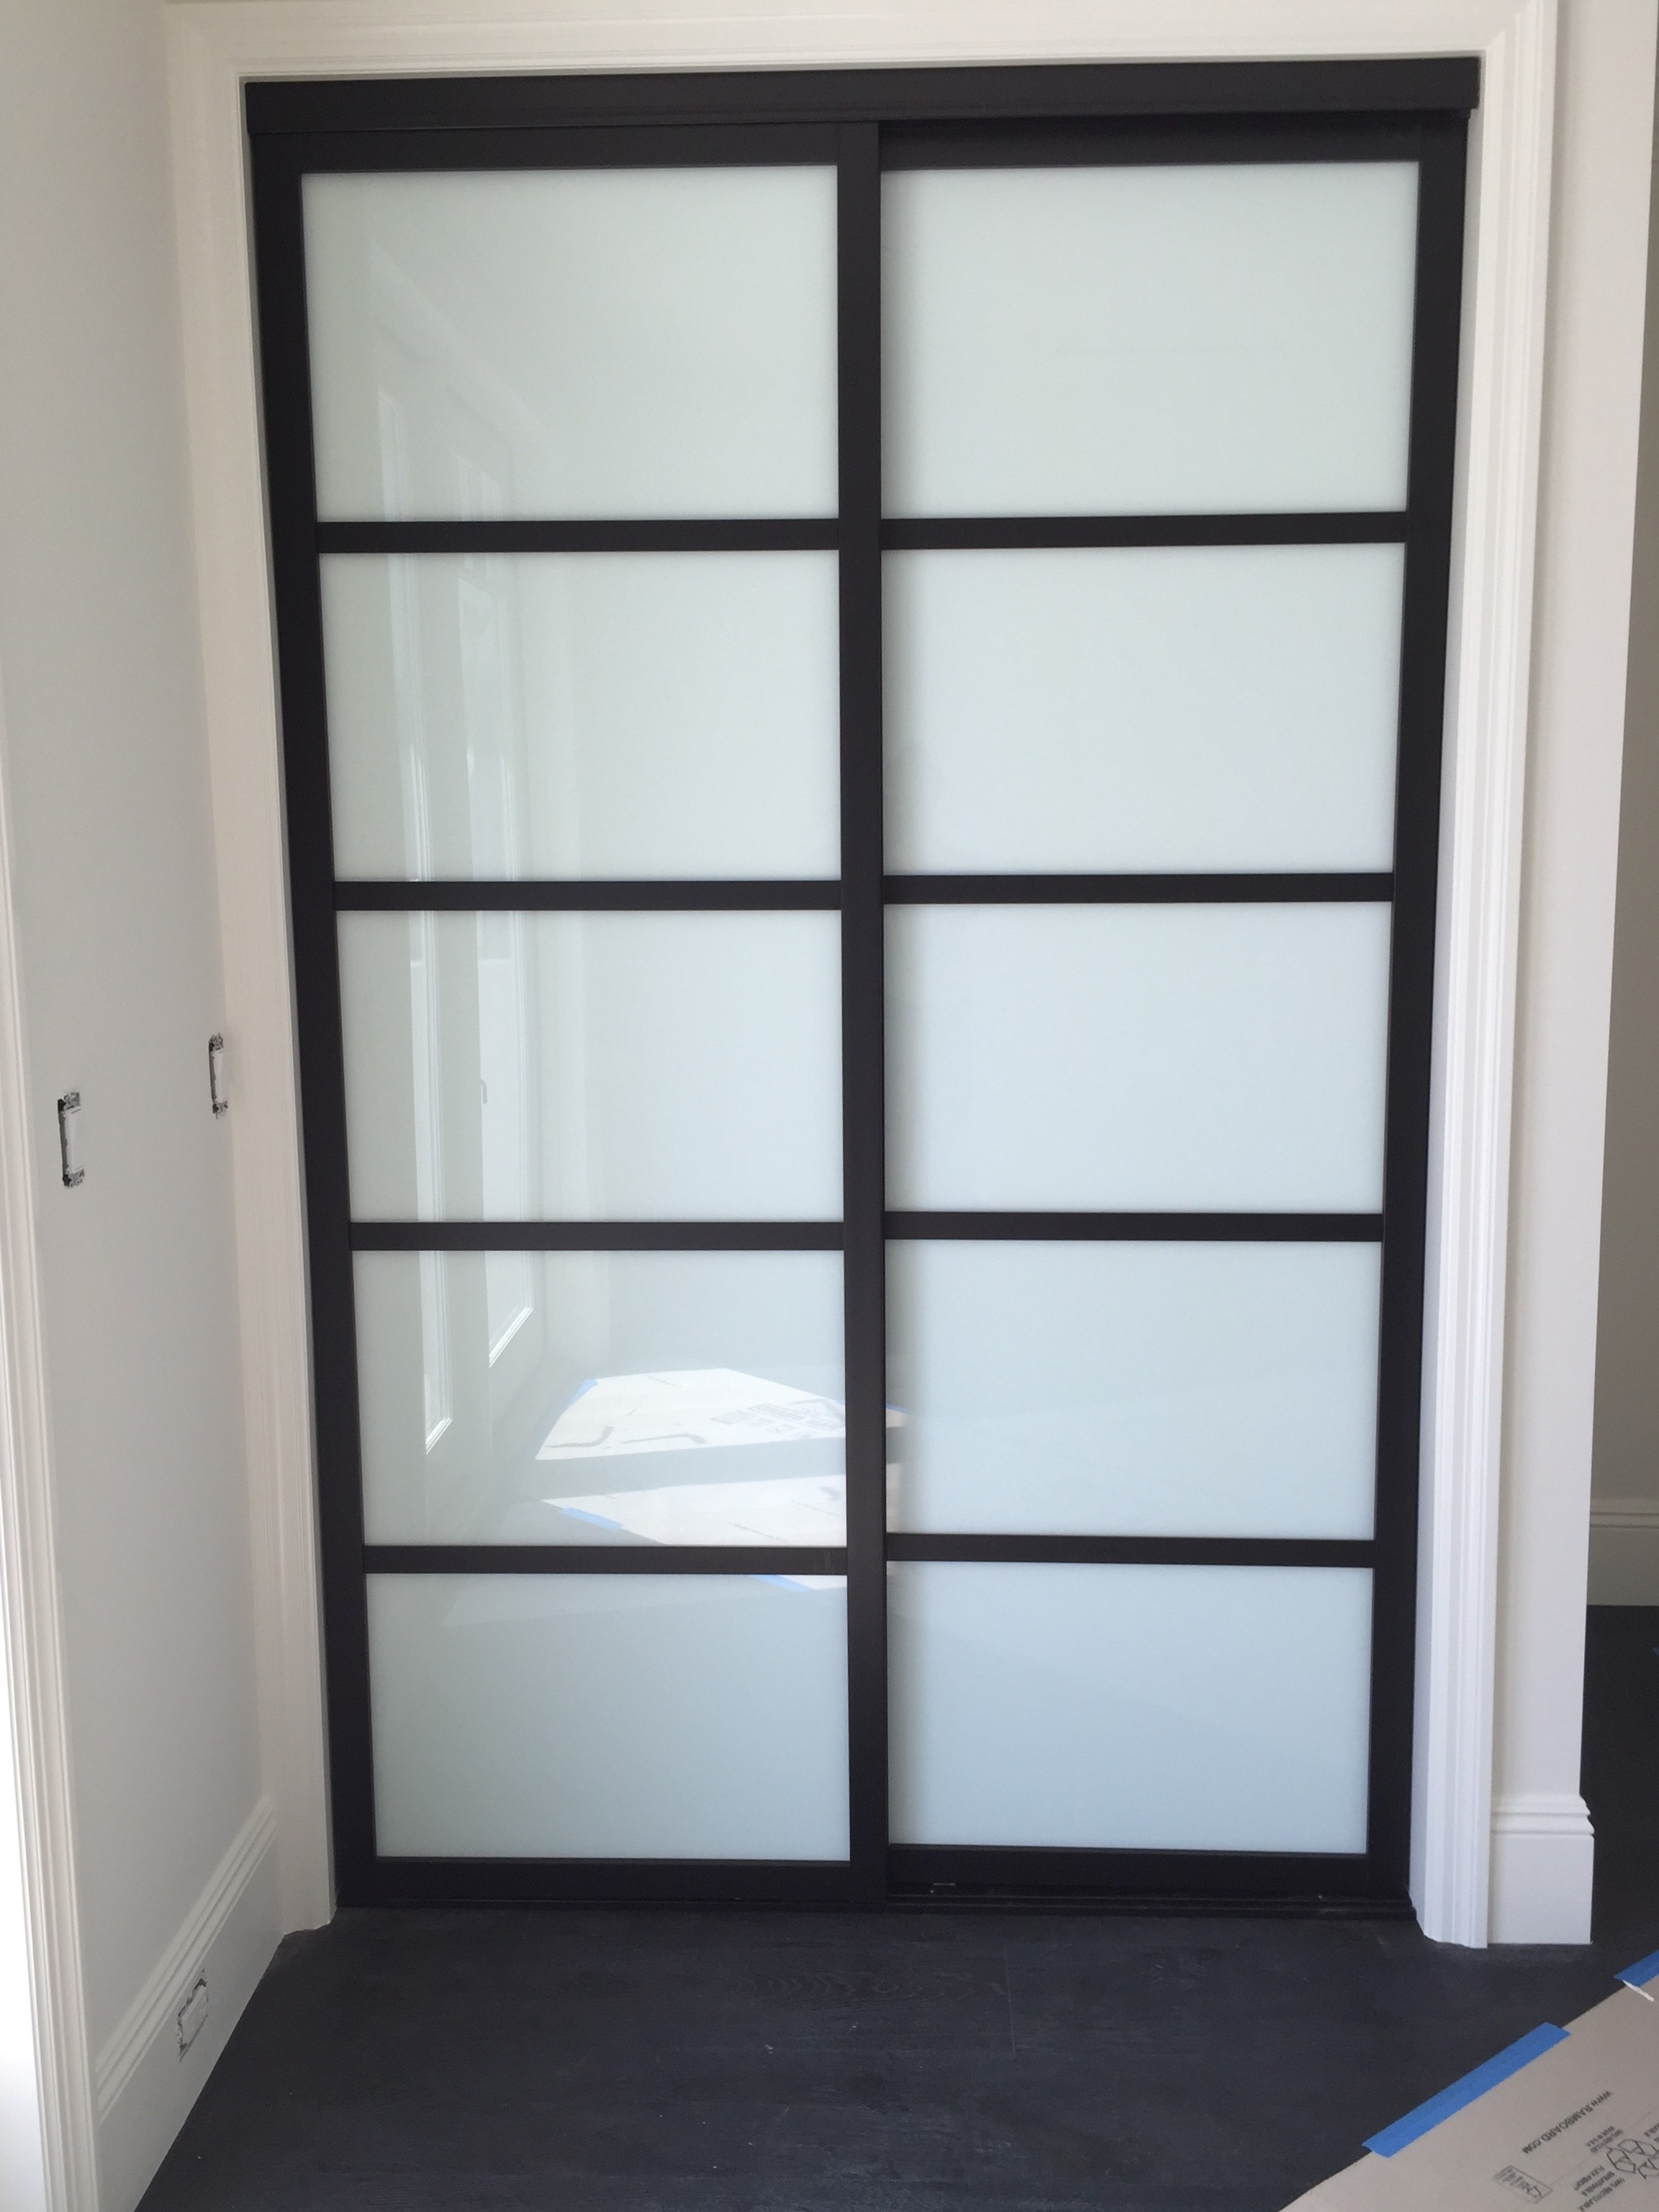 King Custom Cabinets And Closet Organizers Sliding Doors For Any